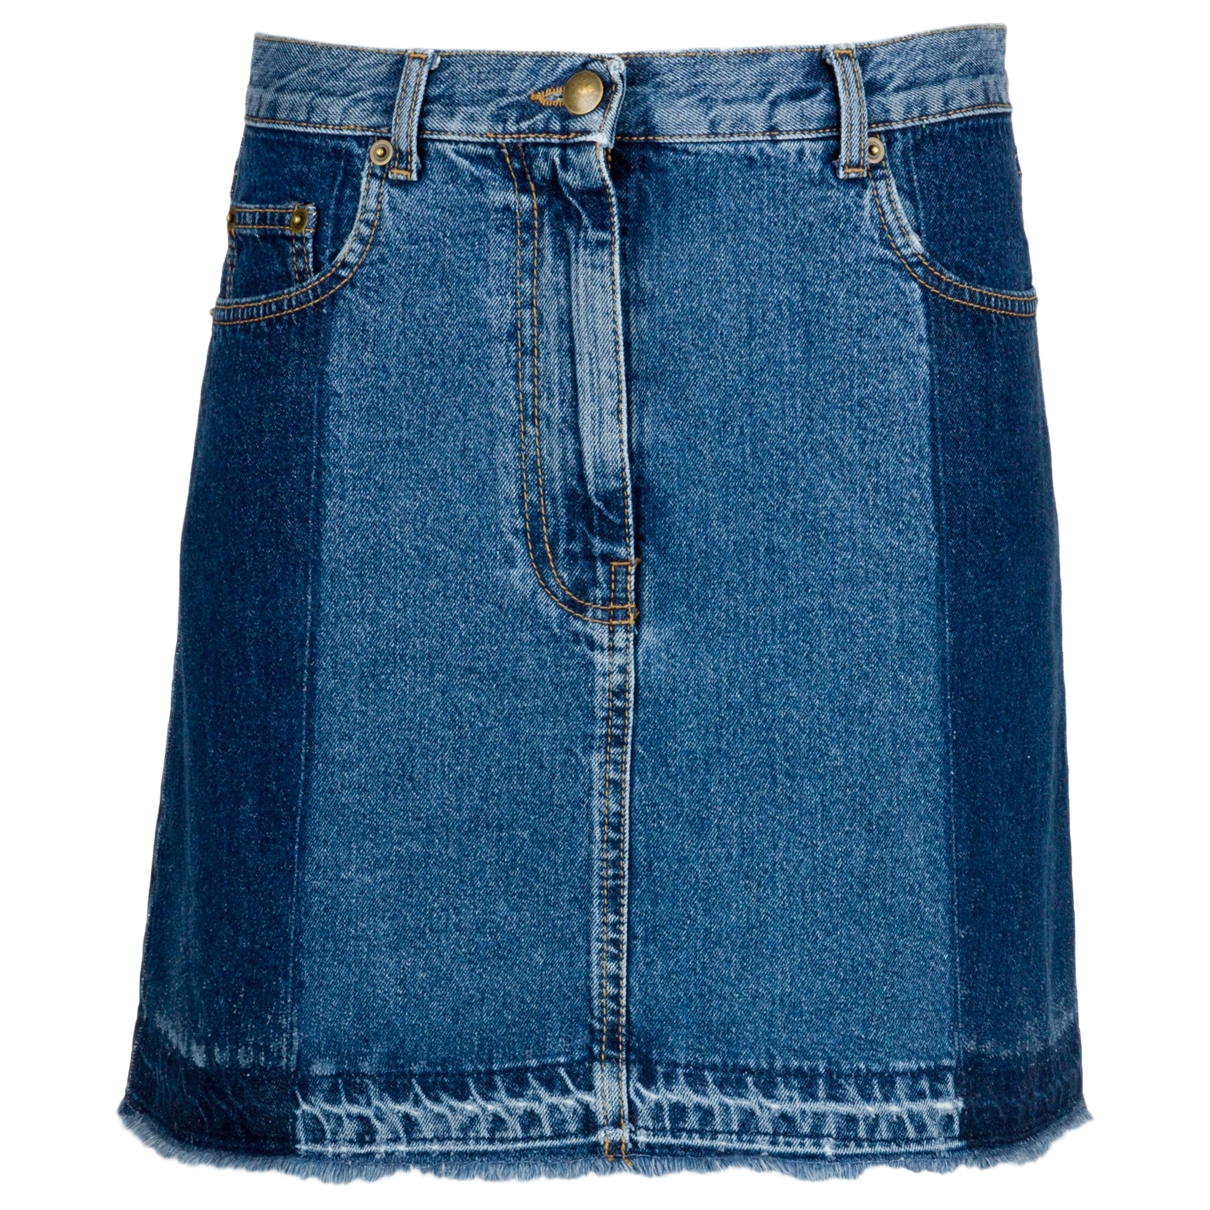 Alexander Mcqueen \N Blue Denim - Jeans skirt for Women 10 UK